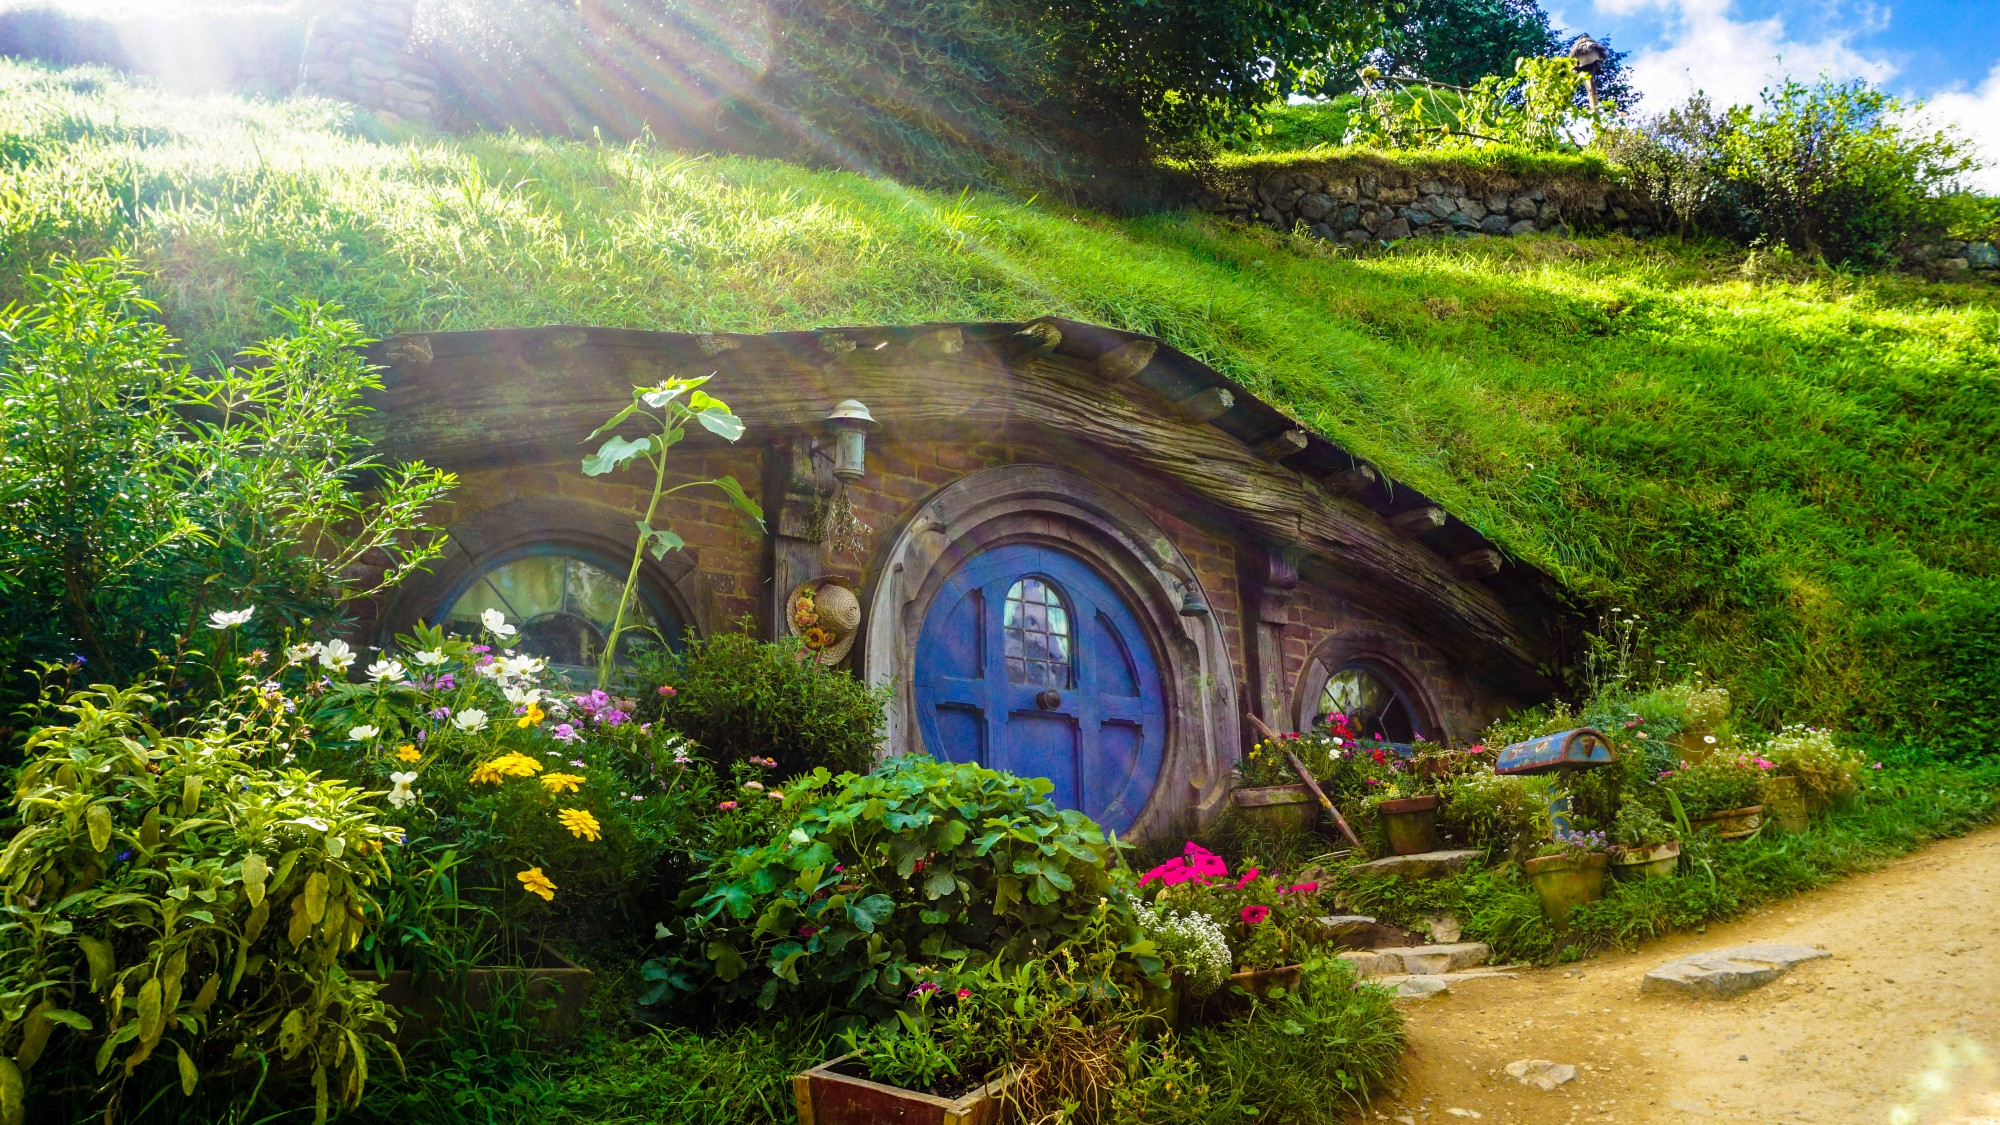 A hobbit house in the side of a hill